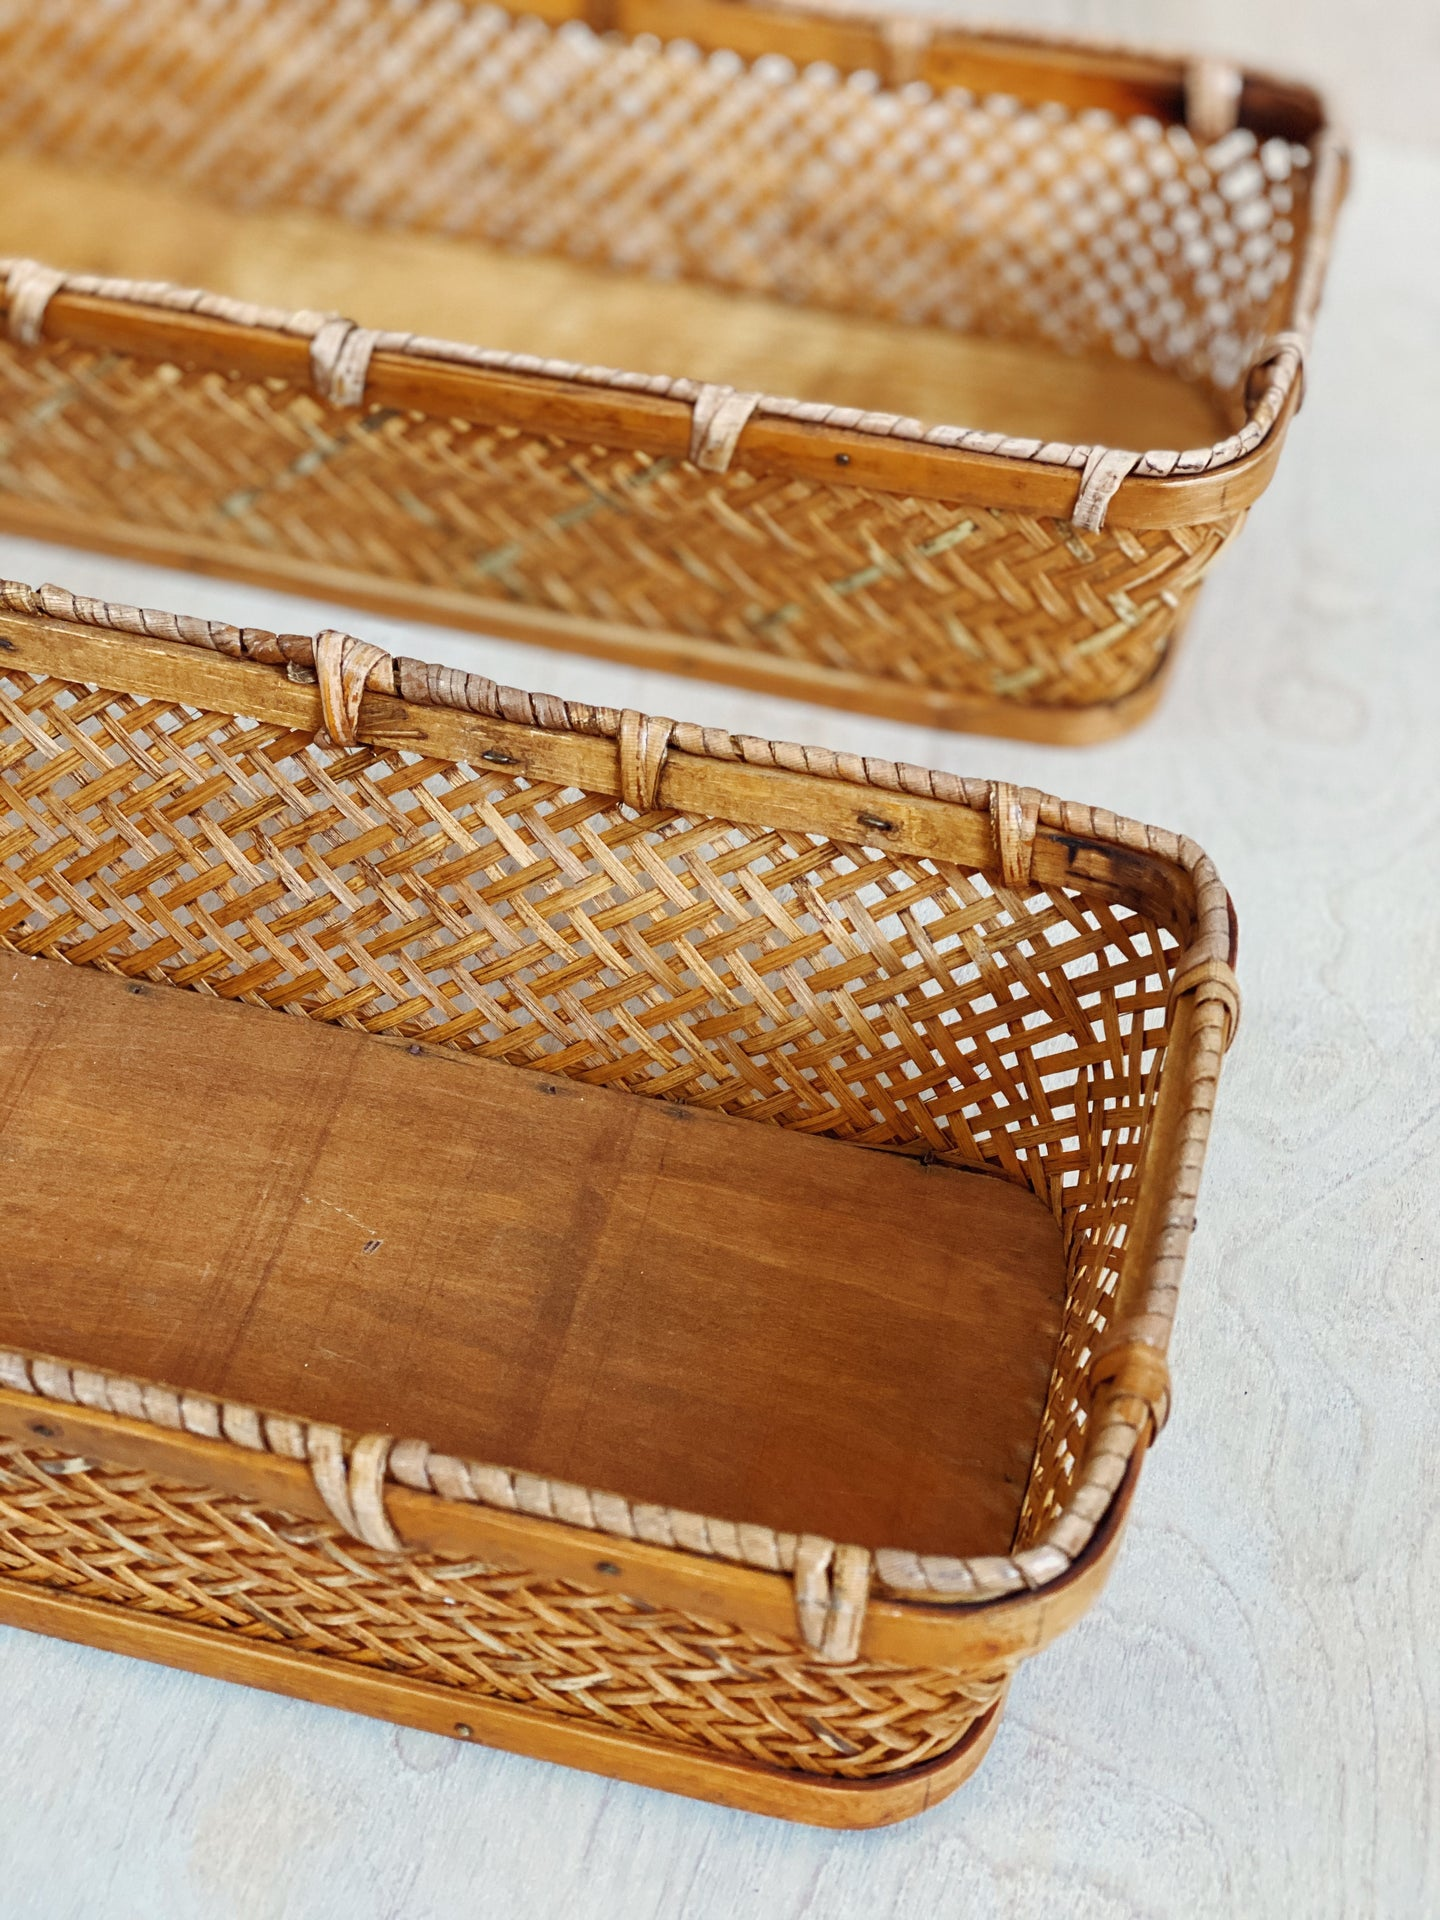 Long Wicker Baskets - VintageChameleon